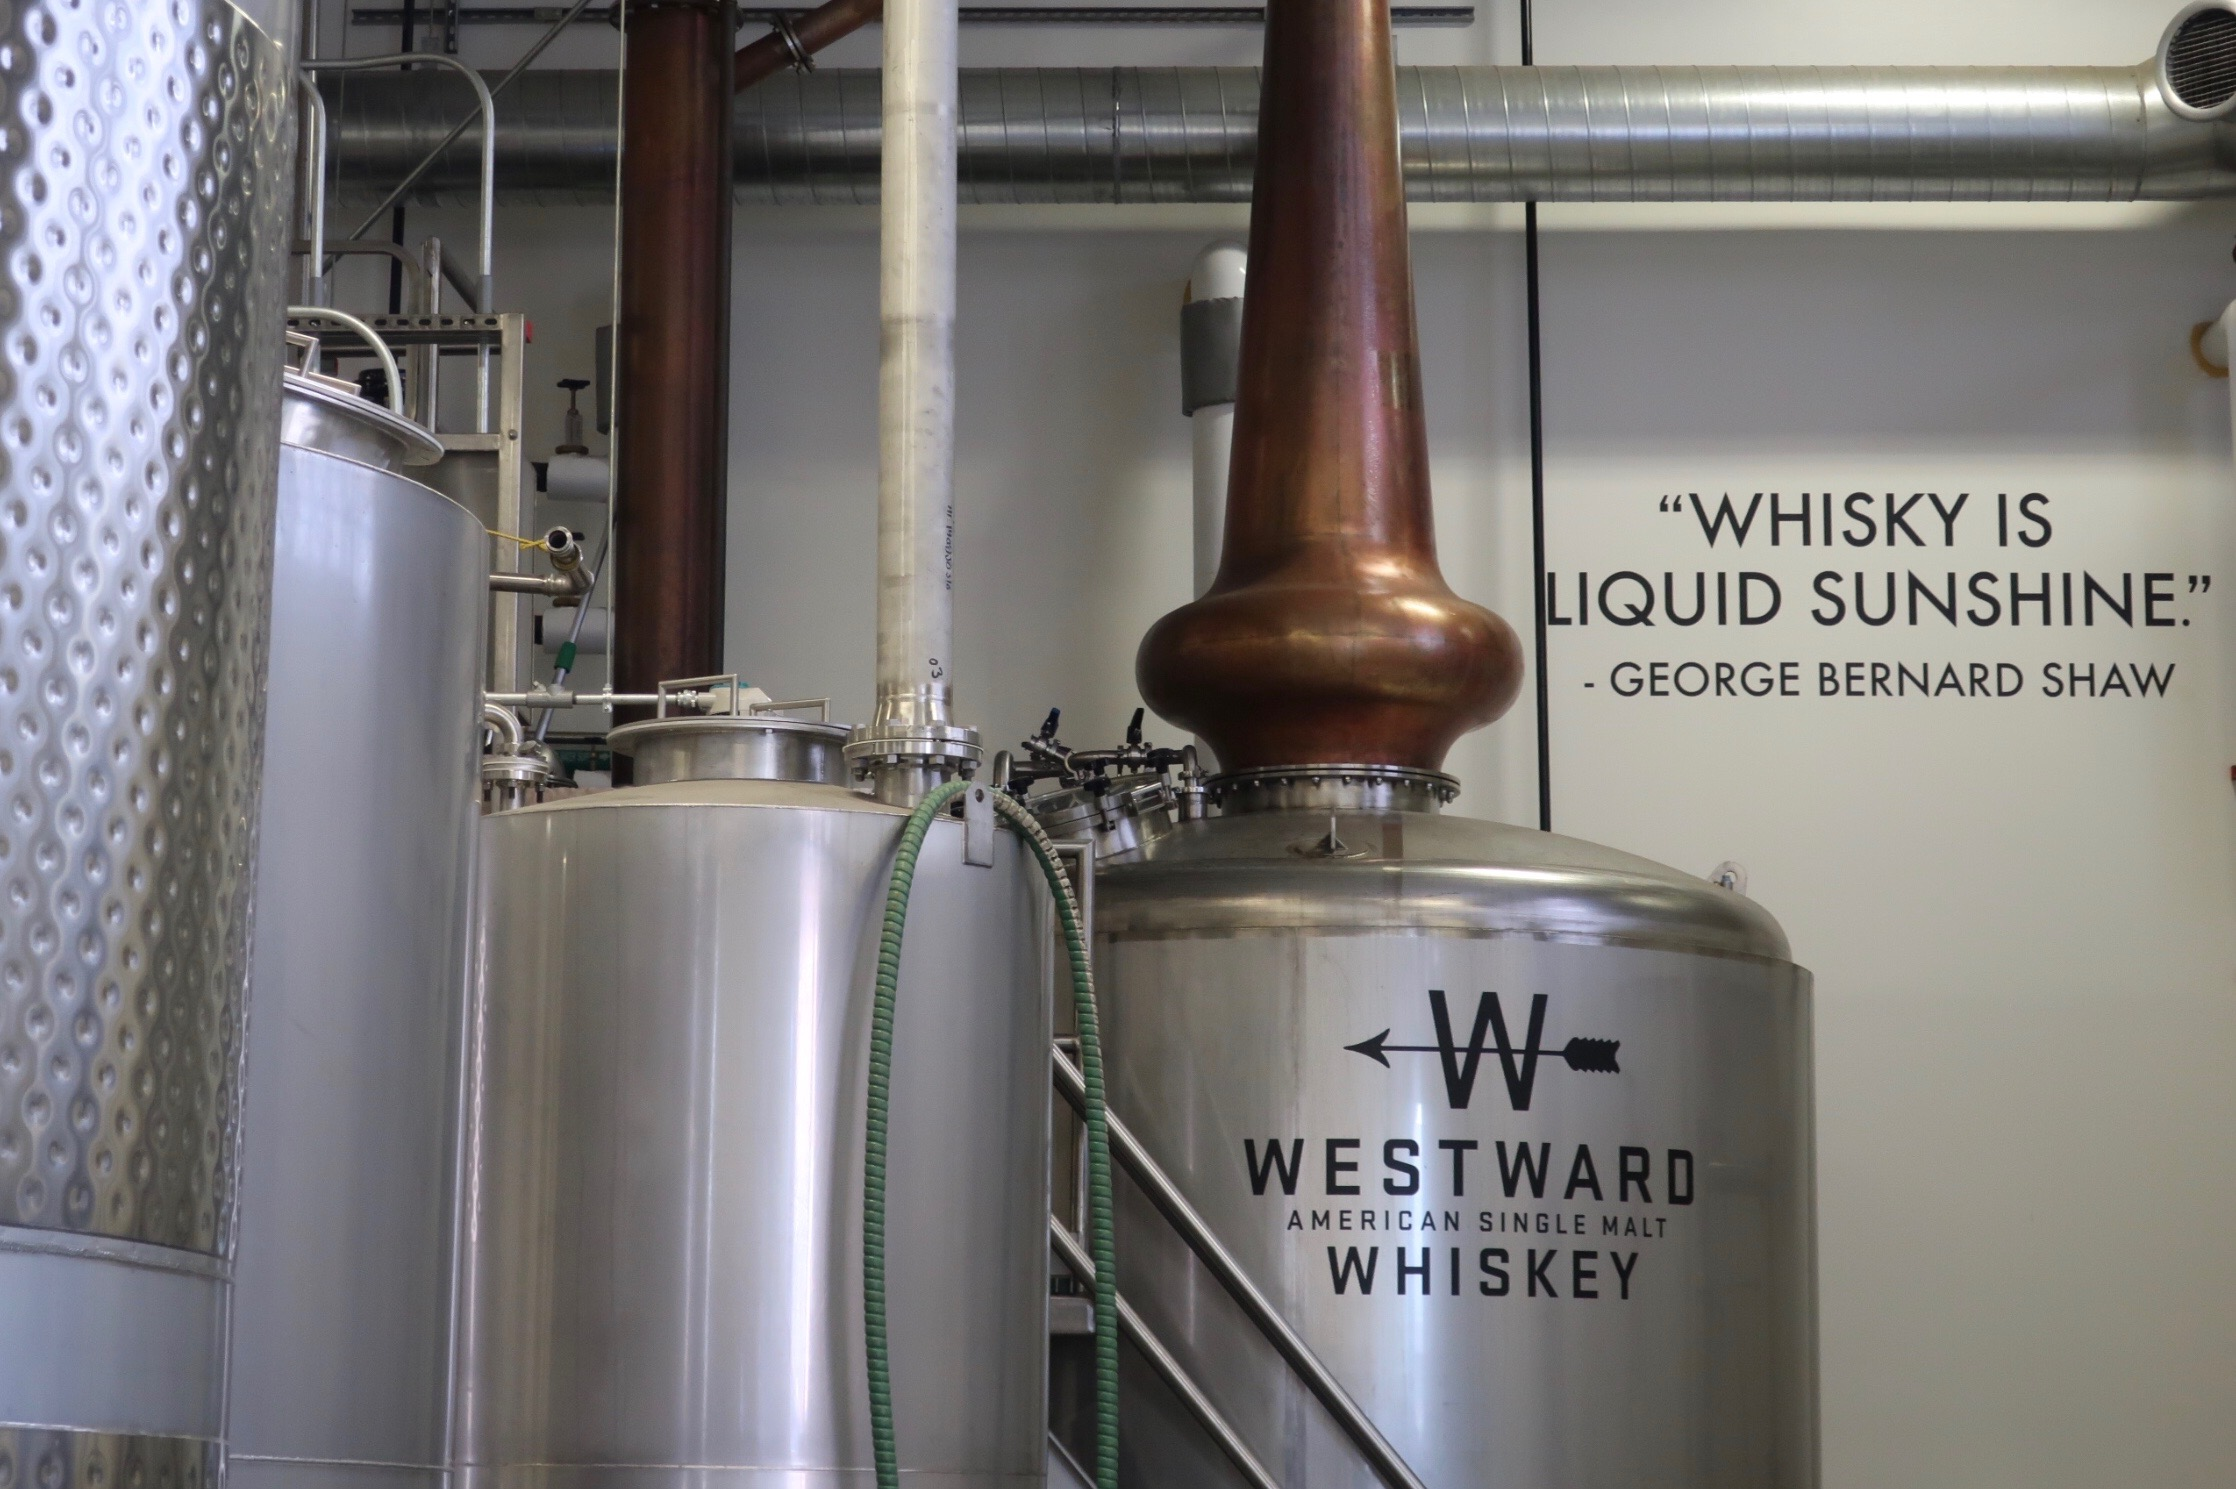 Whiskey Is Liquid Sunshine - George Bernard Shaw is on the wall inside House Spirits, the home of Westward Whiskey.